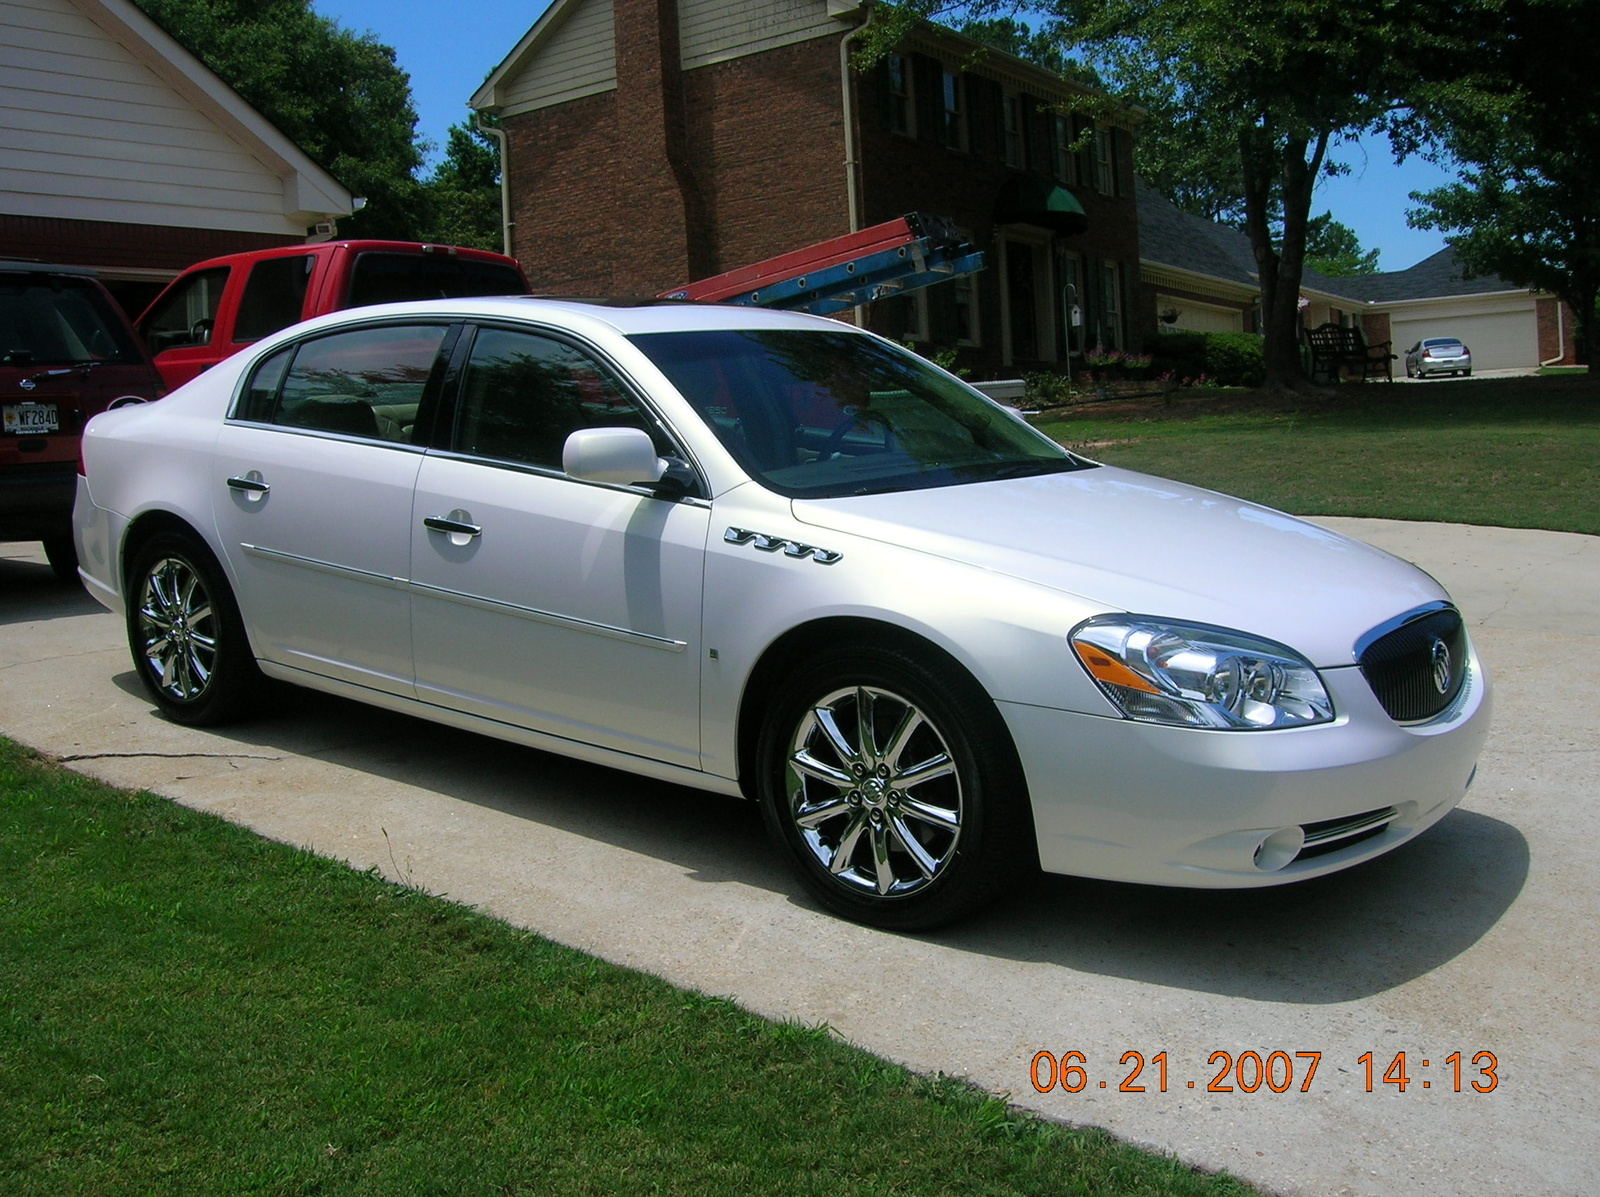 2007 Buick Lucerne - Overview - CarGurus